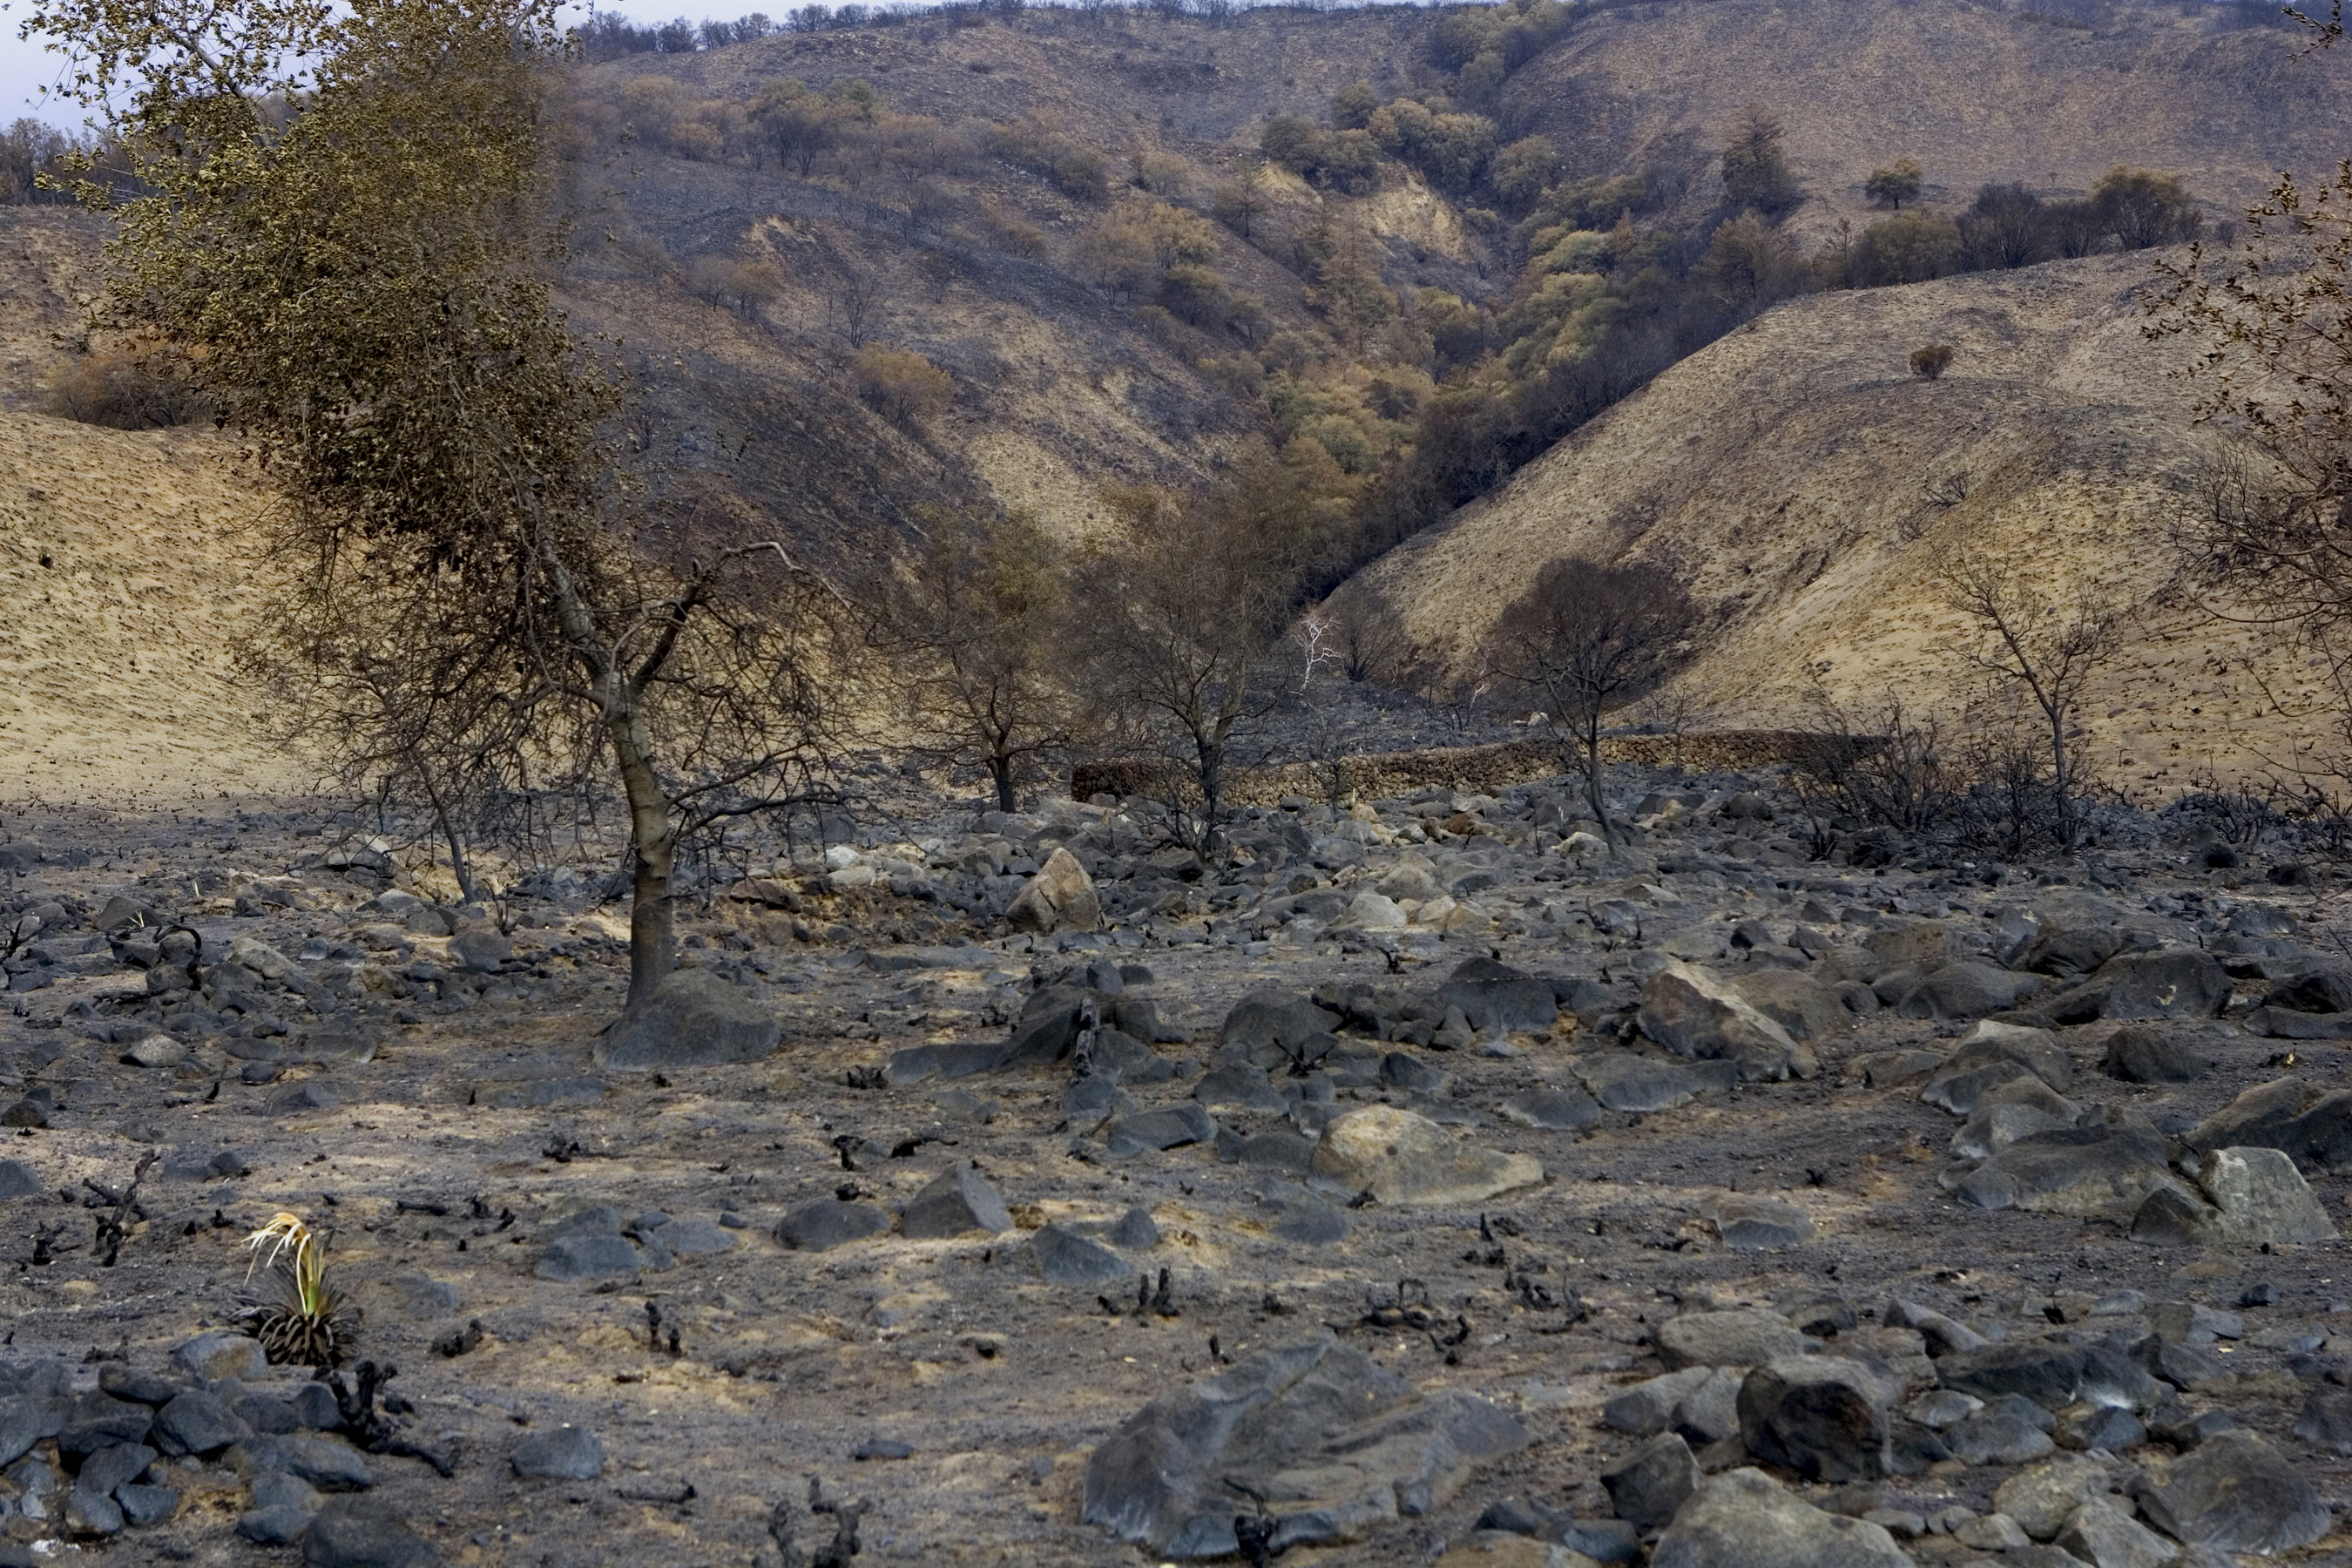 Burned Landscape Stock Photos and Images - 123rf.com